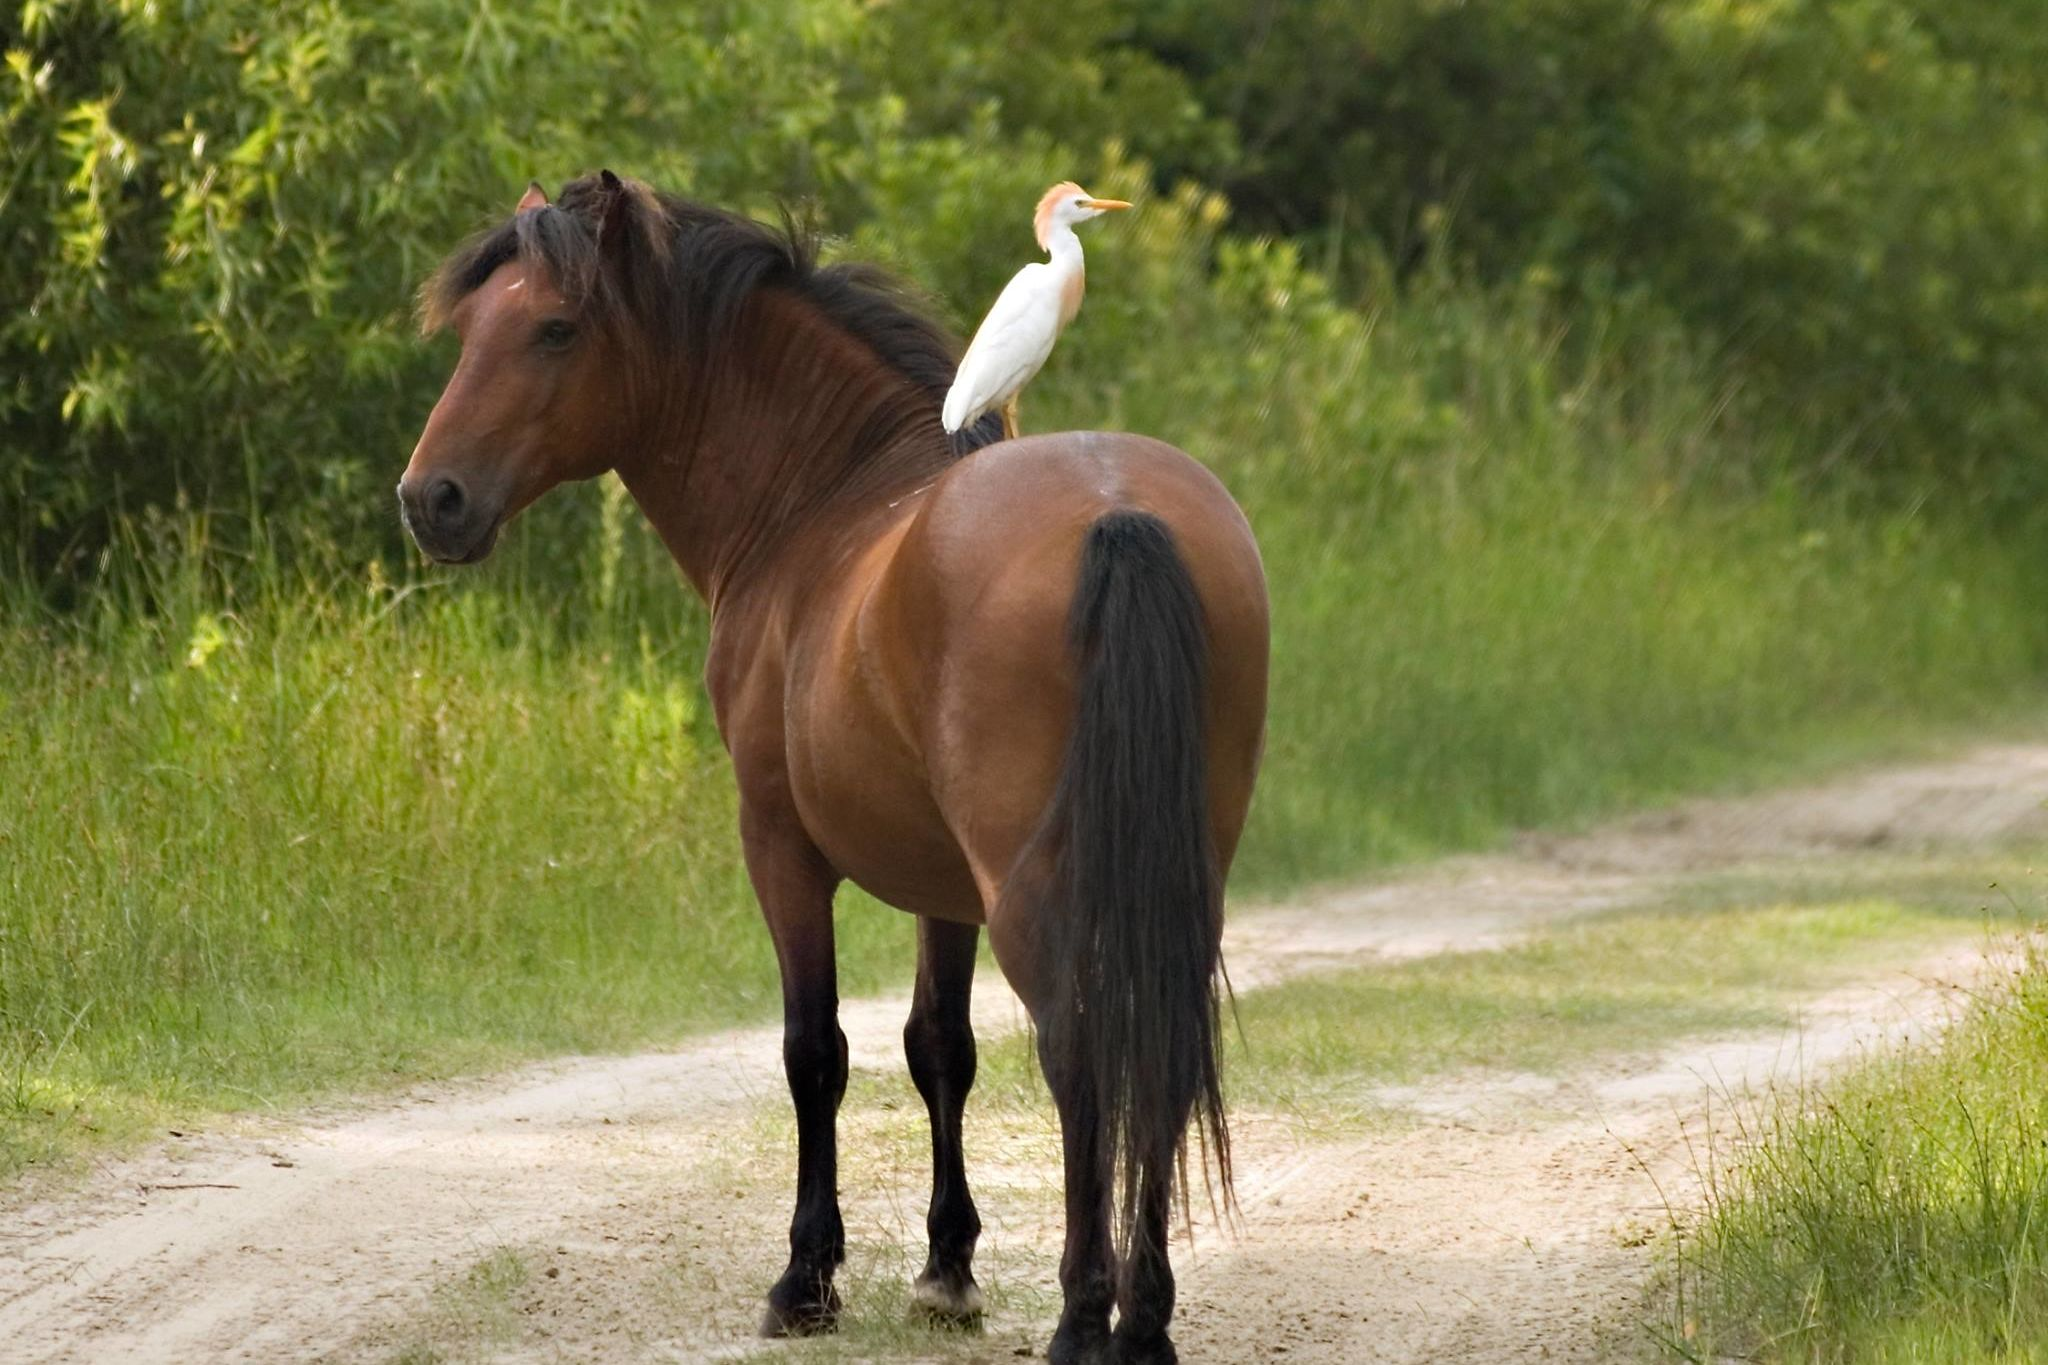 WATCH: There's a Very Good Explanation for This Wild Horse-Riding Bird, Thank You Very Much